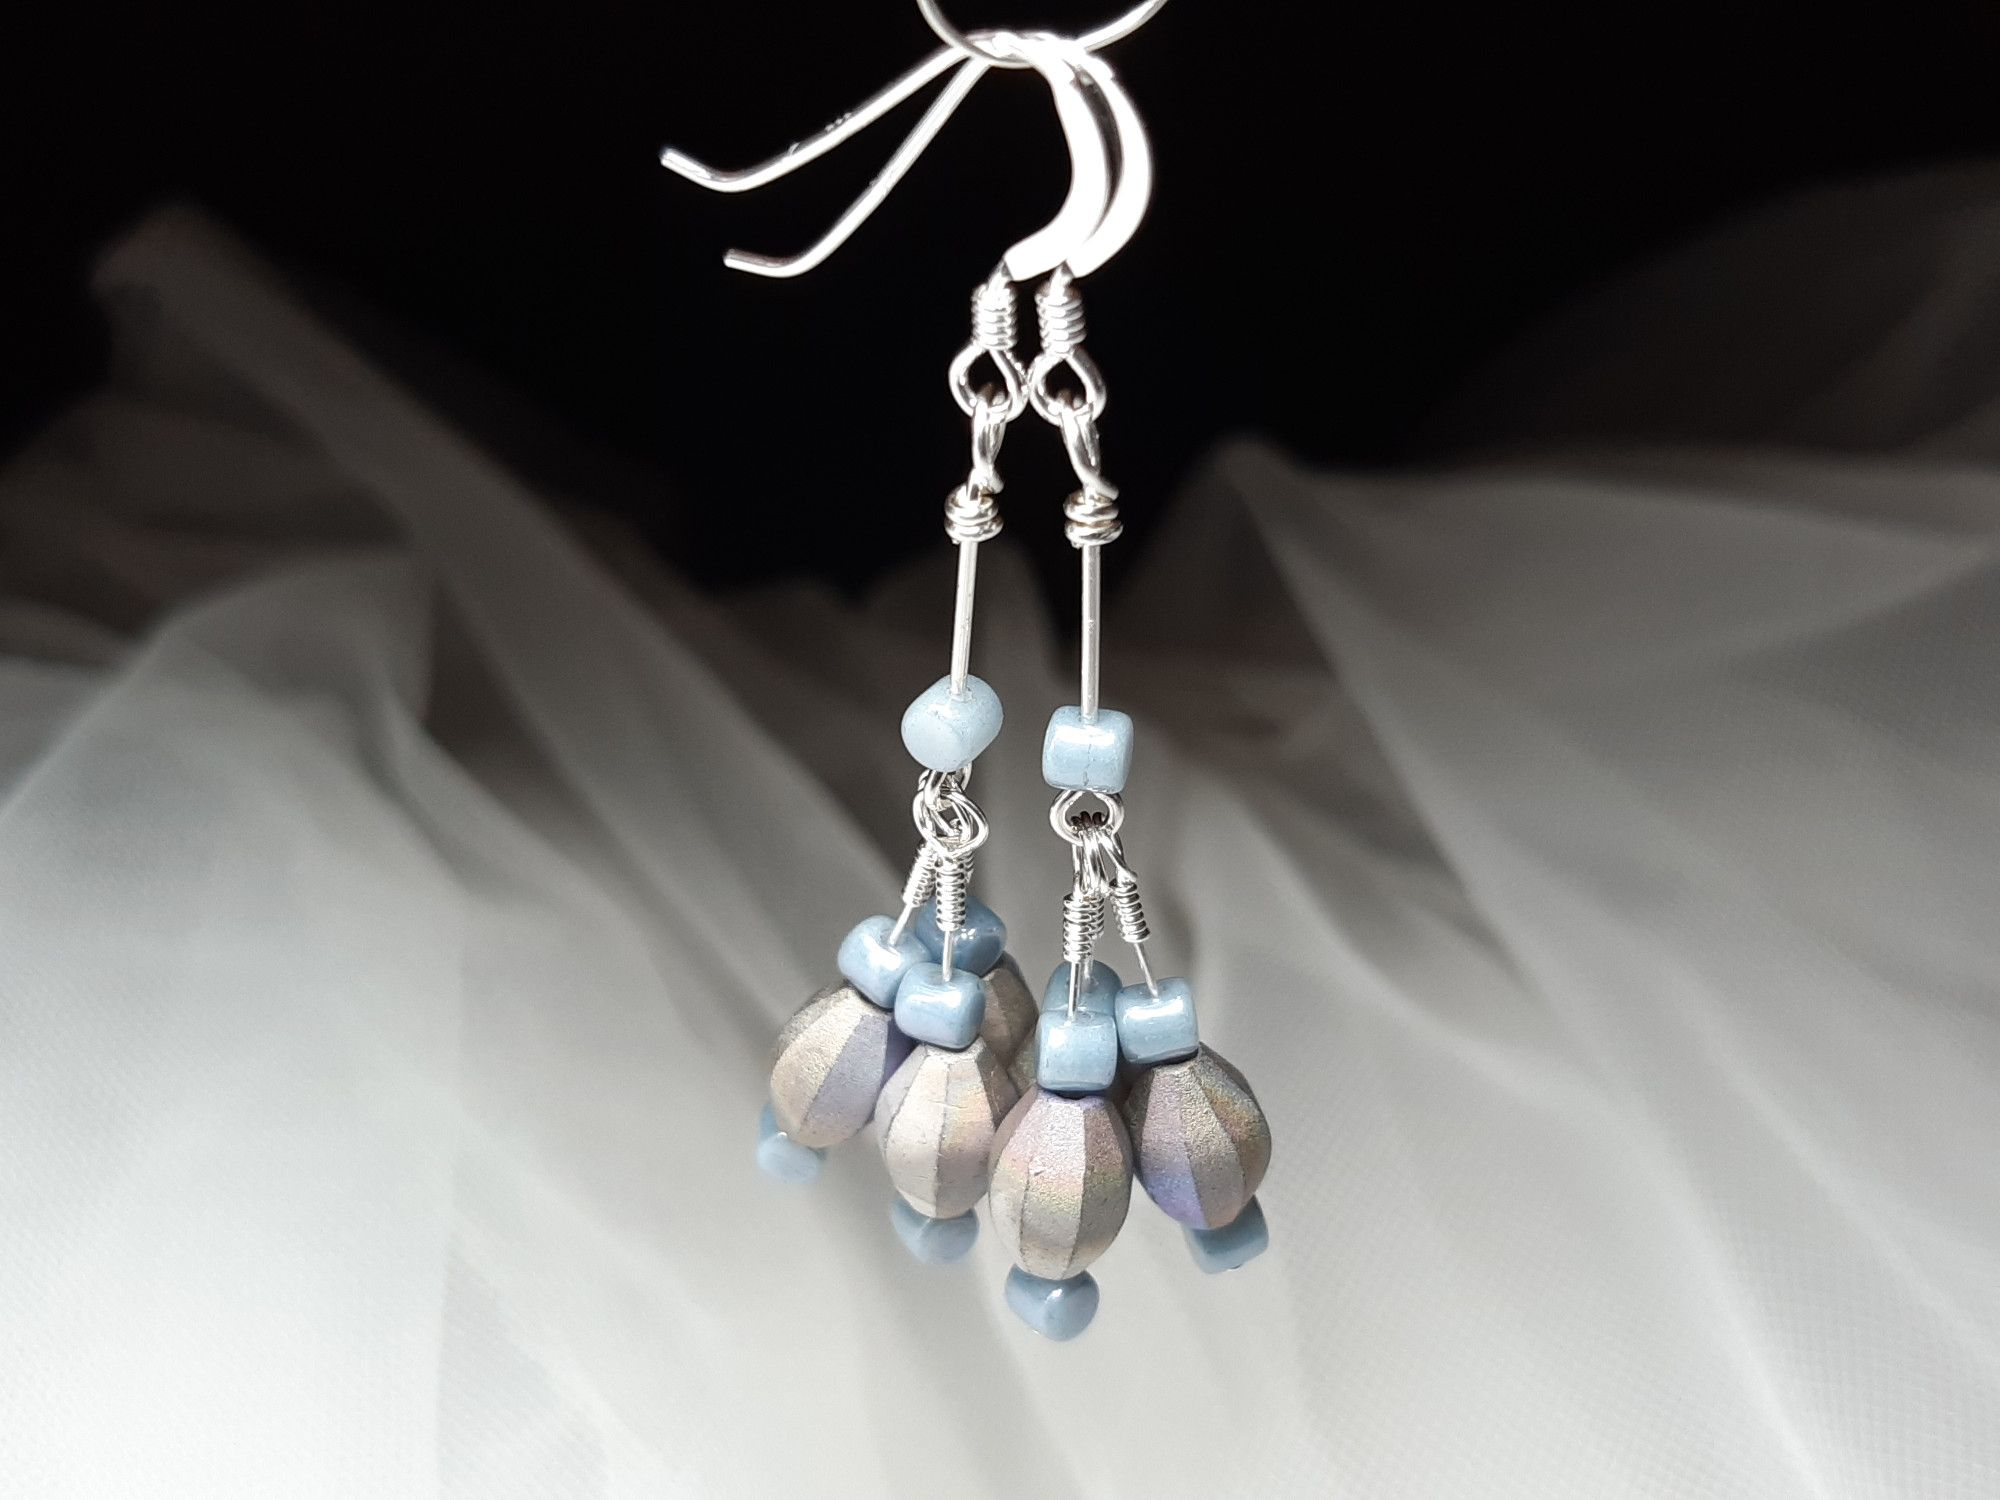 Occasion-Iridescent-blue-grey-violet-drop earrings-4.jpg